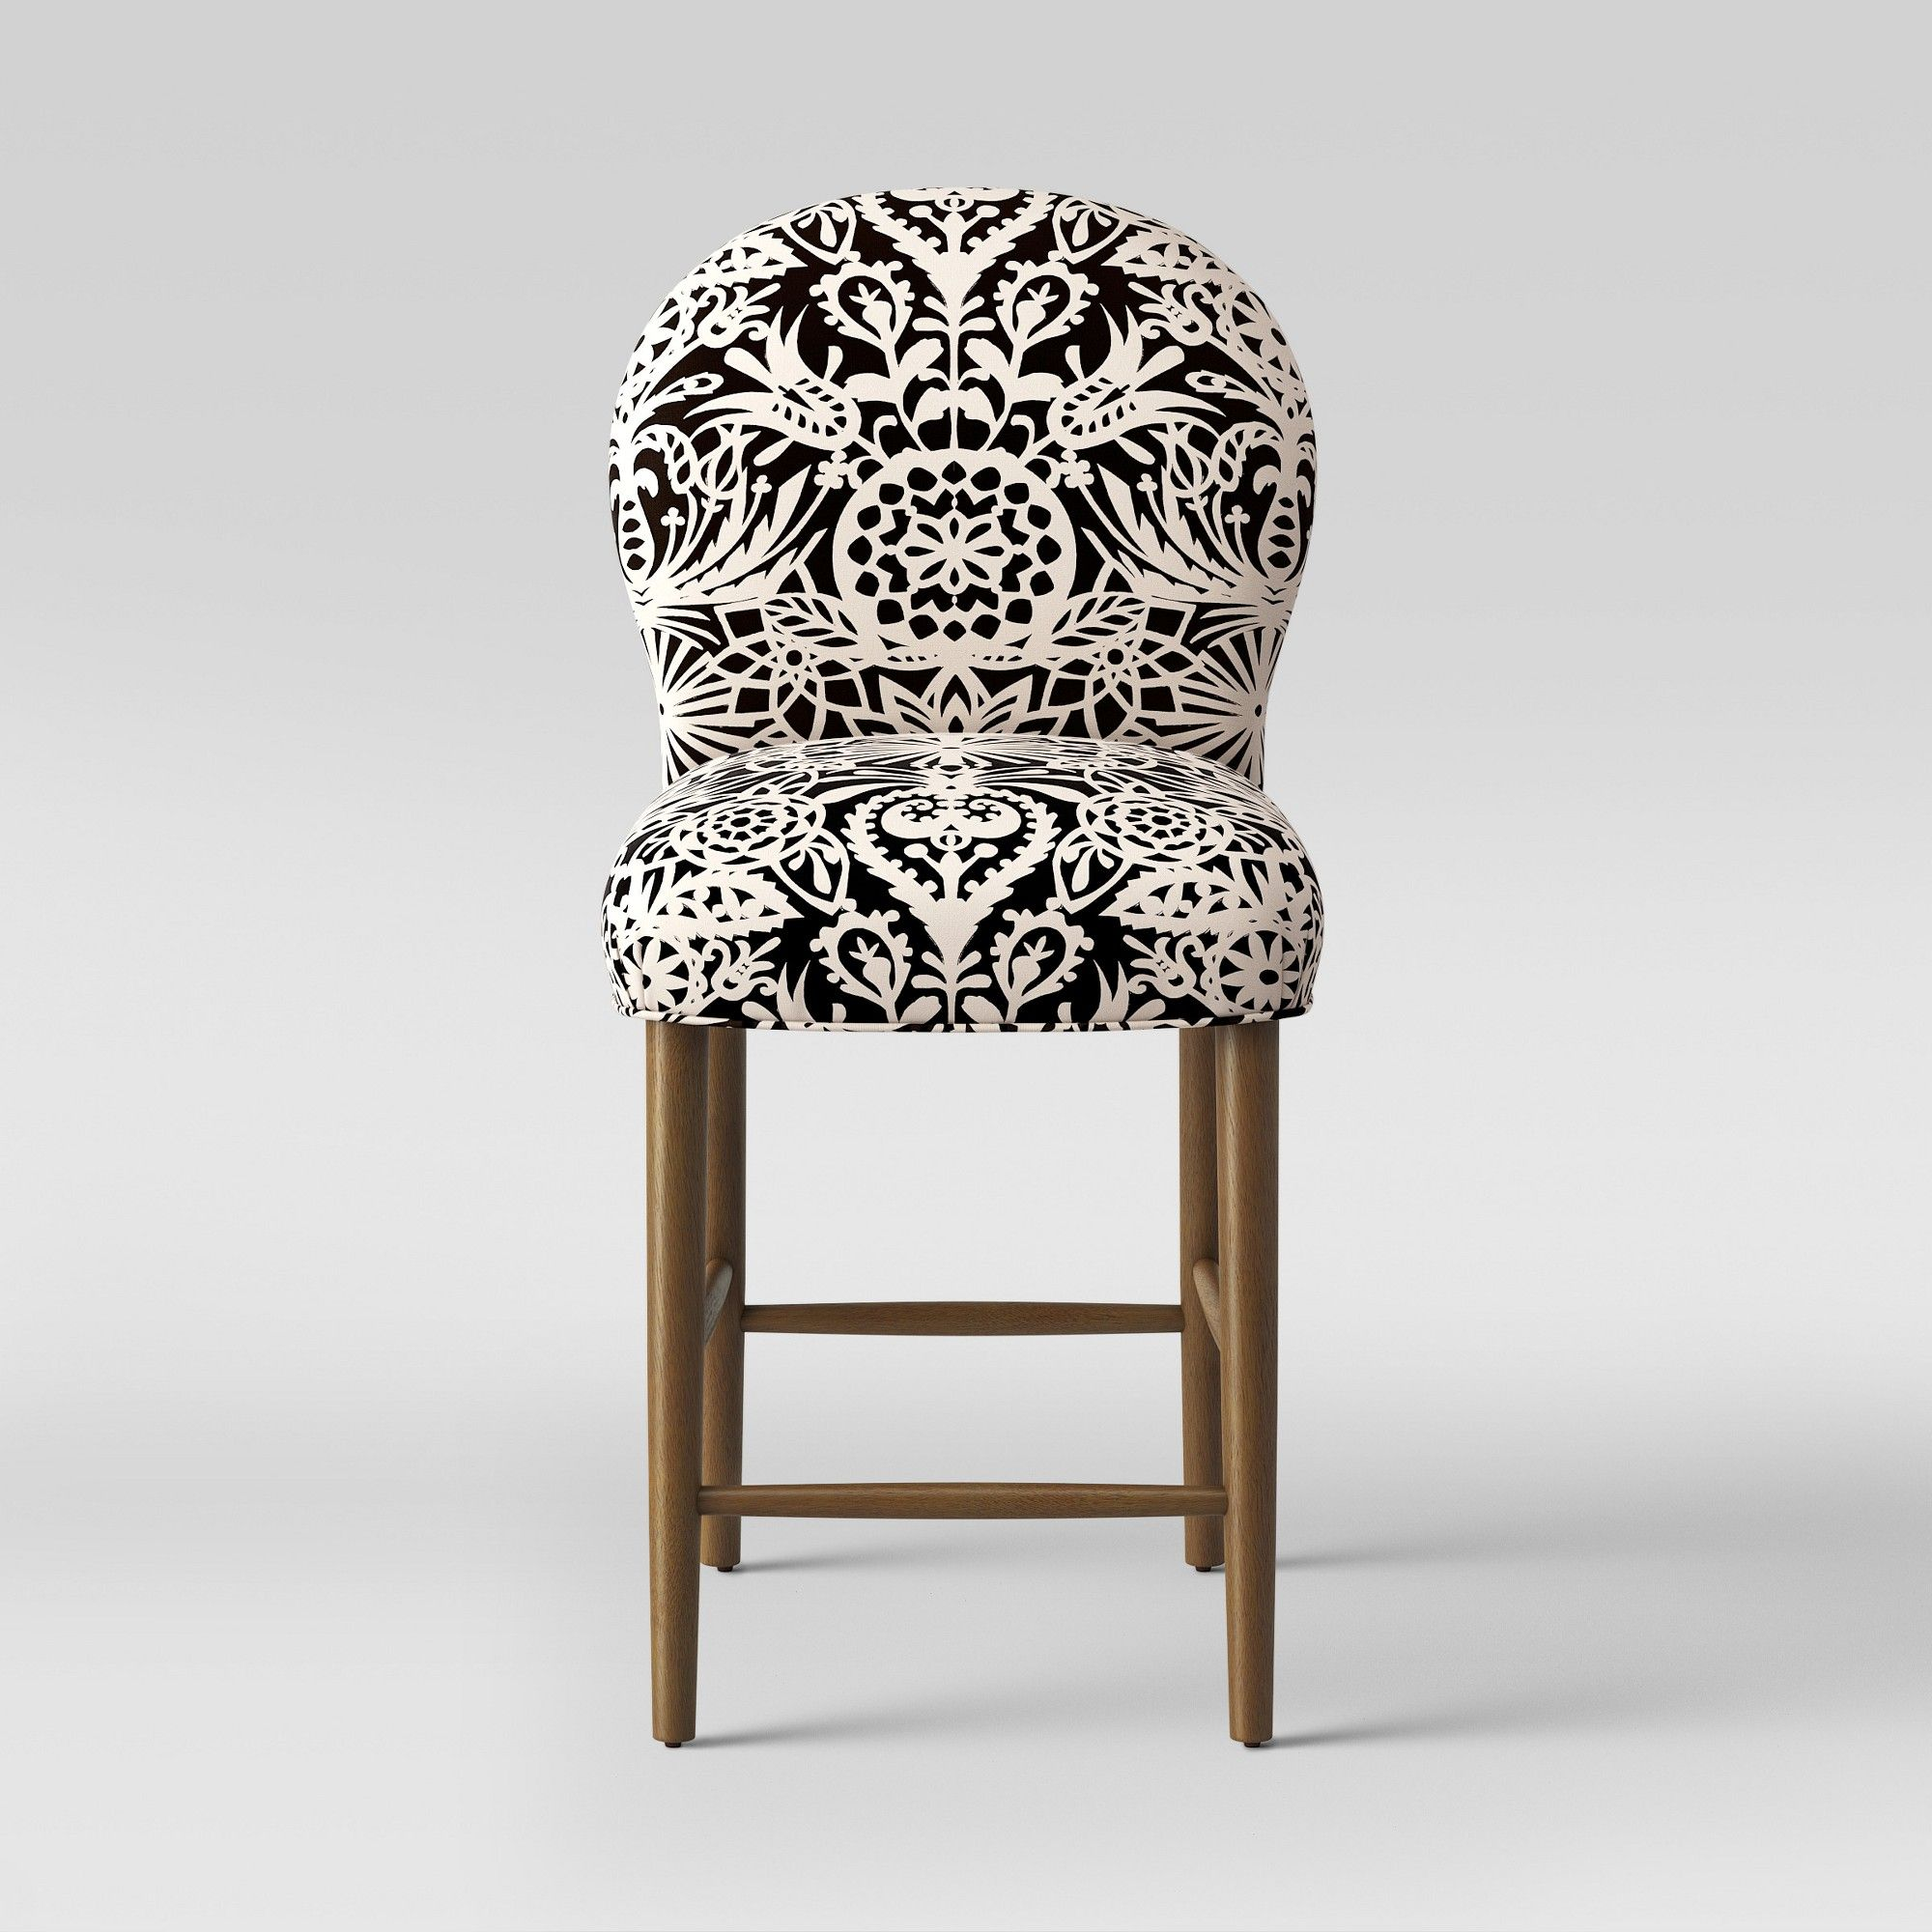 Astonishing 27 Caracara Rounded Back Counter Stool Black White Floral Machost Co Dining Chair Design Ideas Machostcouk